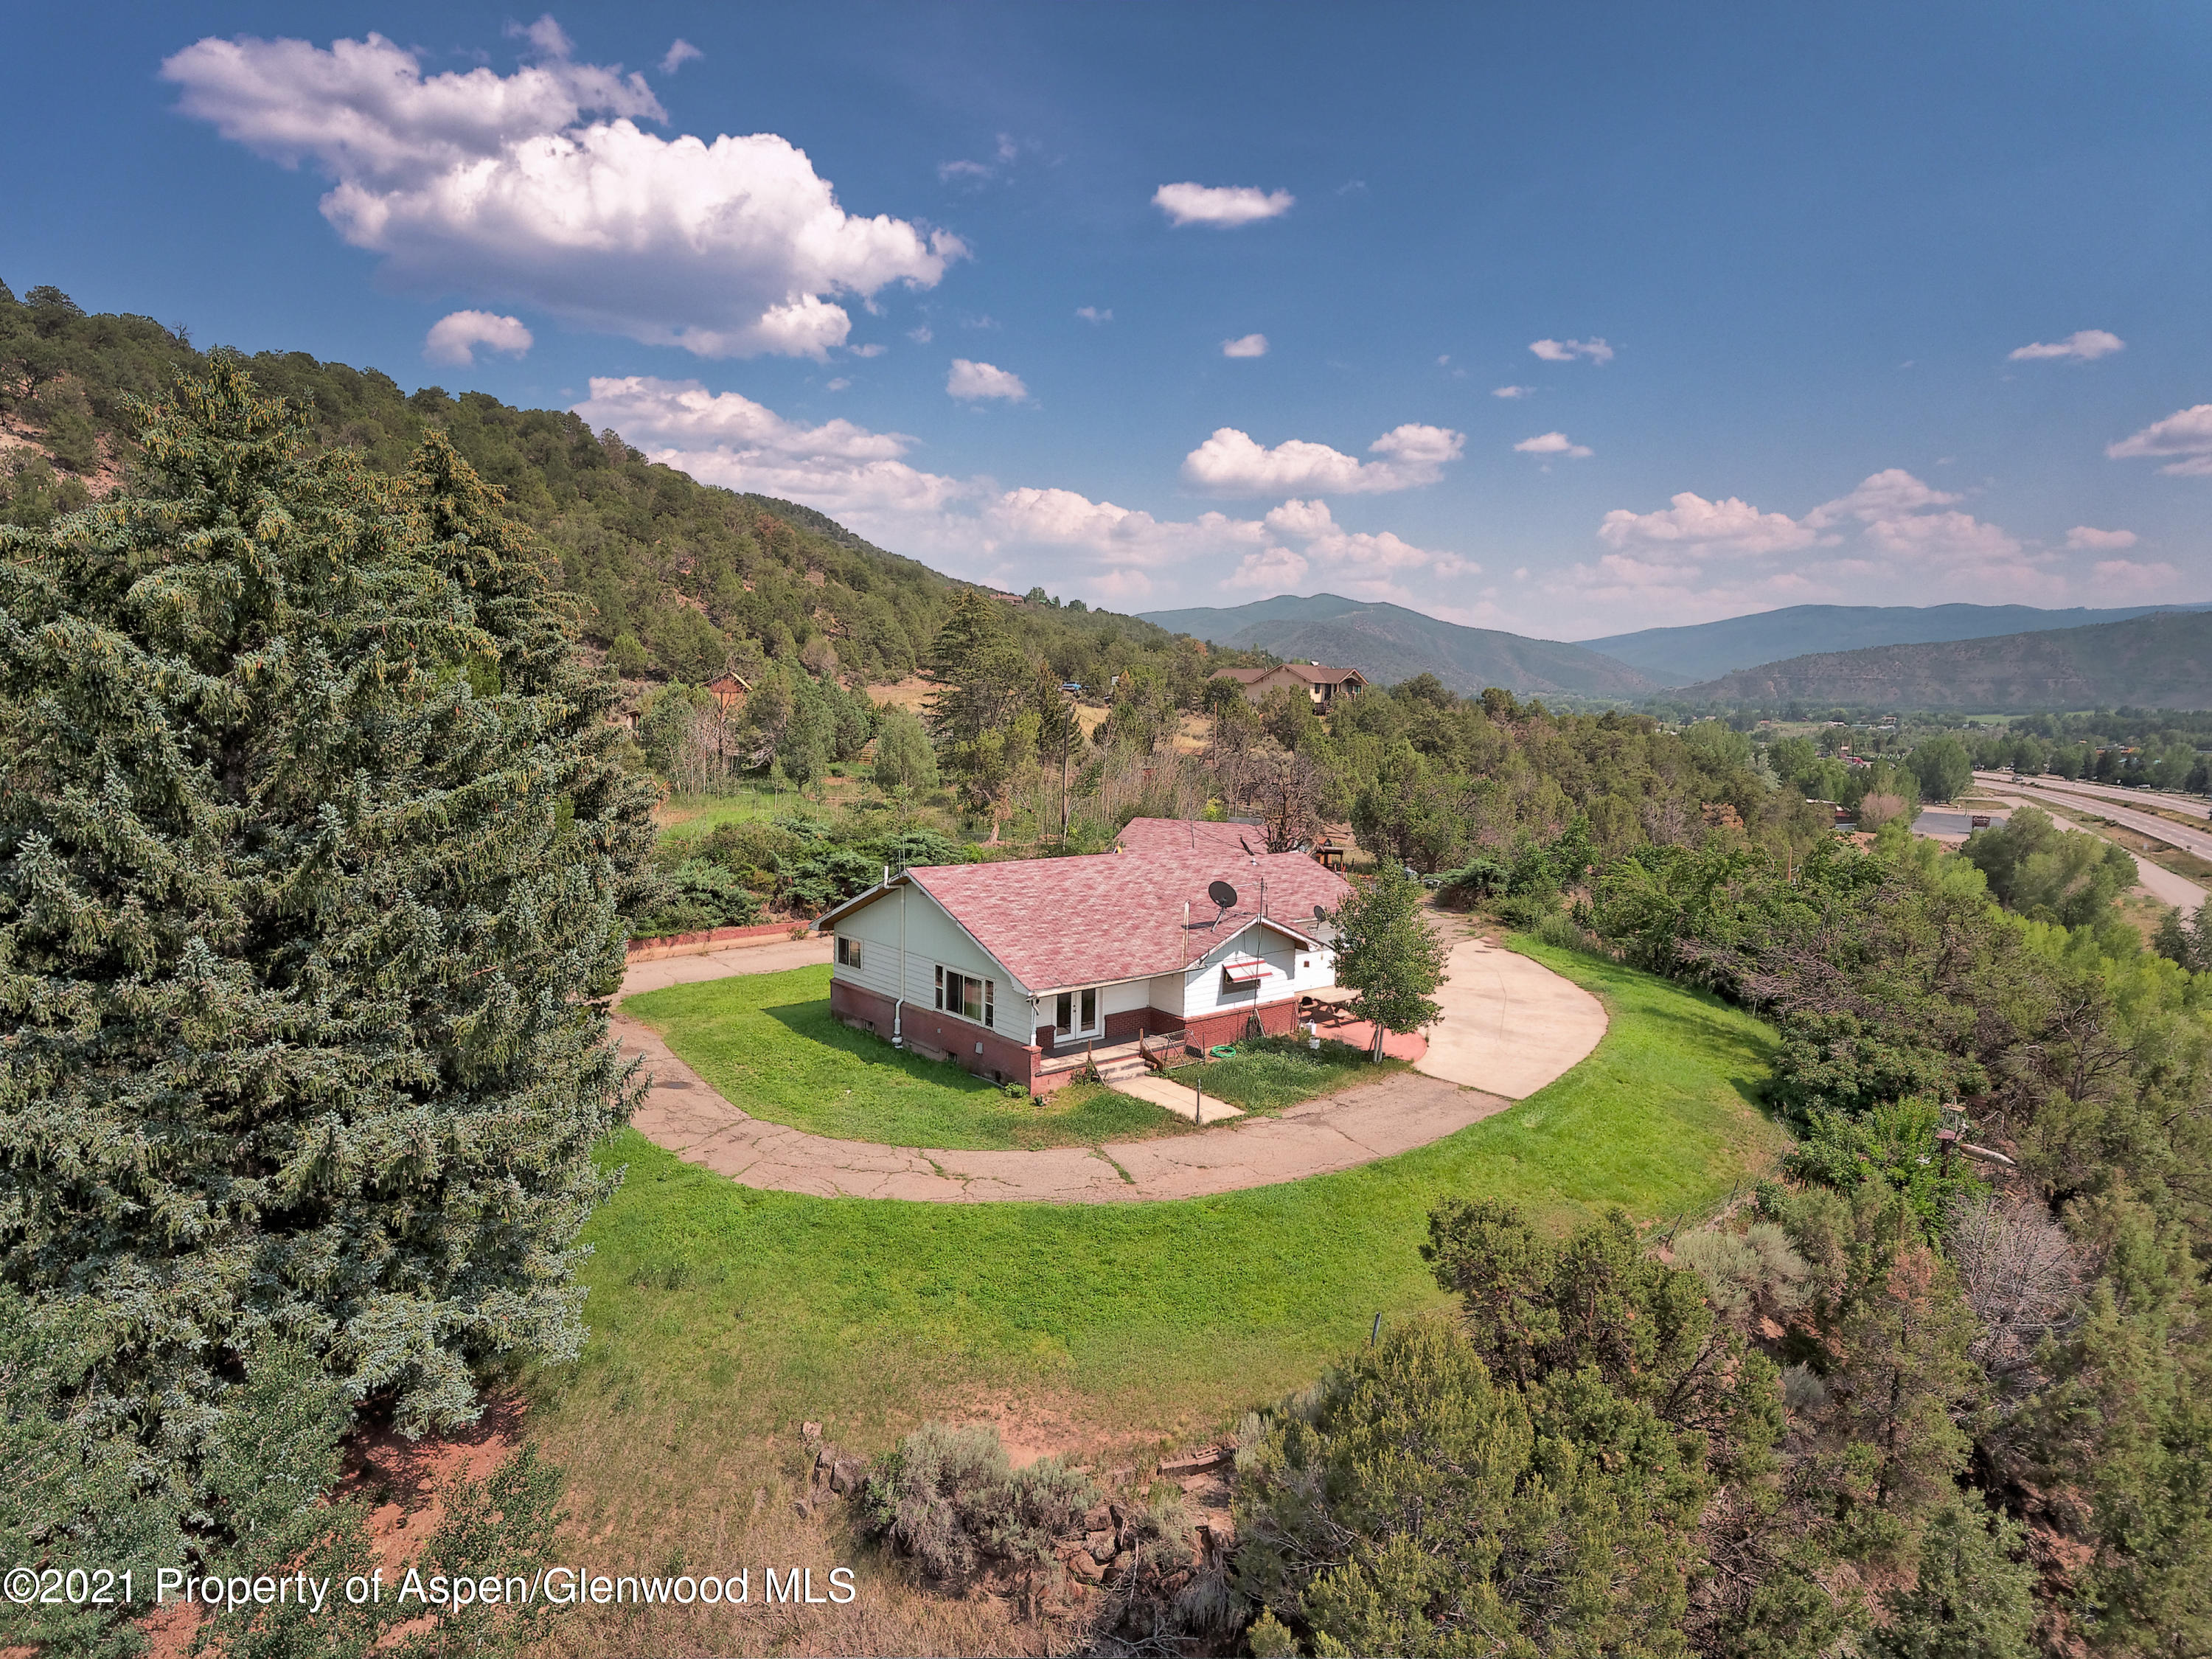 Boasting views up and down the valley, this home on the hill is poised with potential. Just shy of 7 acres, this property has abundant water and spring rights. Make it a horse property with corrals, a barn, and multiple buildings for vehicles and other storage. It can be your home today or re-imagine use of this property as a redevelopment opportunity. Prime access to HWY 82 and only a 4-minute drive to Willits town center, Whole Foods, City Market, and other shopping and services.